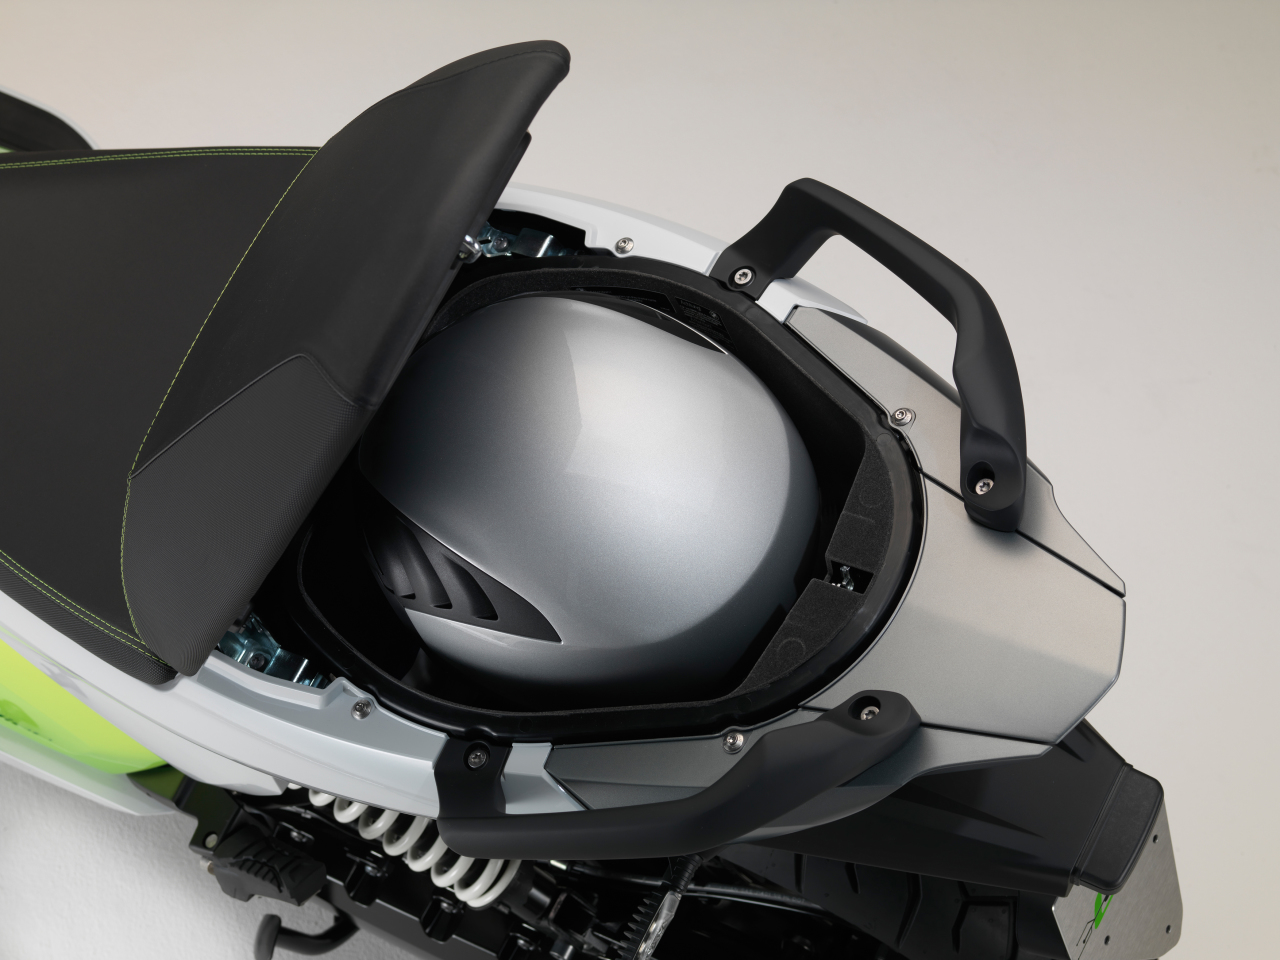 essai du maxi scooter lectrique bmw c evolution photo 8 l 39 argus. Black Bedroom Furniture Sets. Home Design Ideas